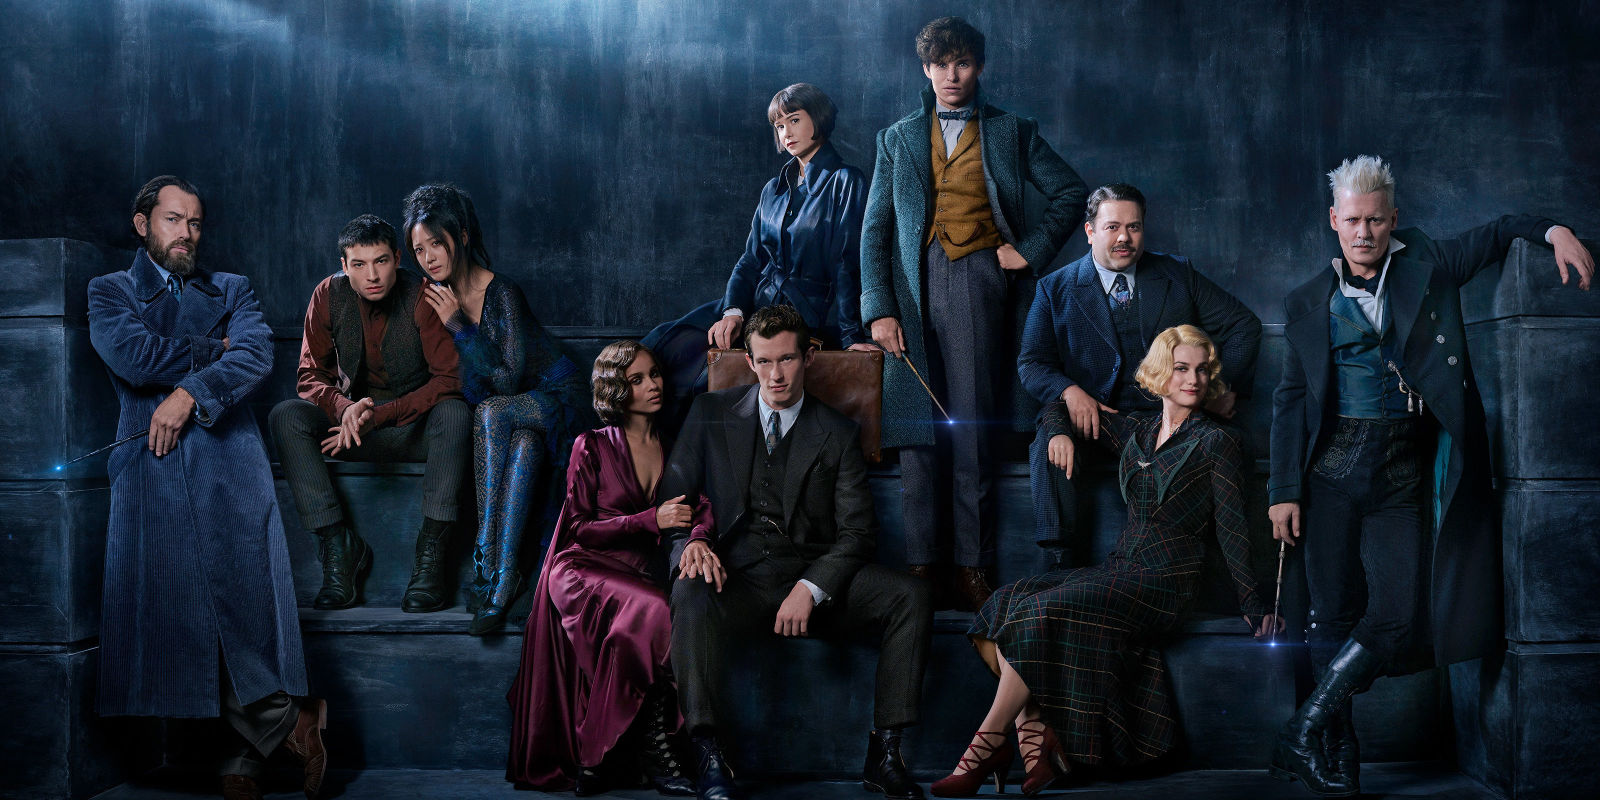 The action of the sequel Fantastic beasts will take place in Paris 11/23/2017 6